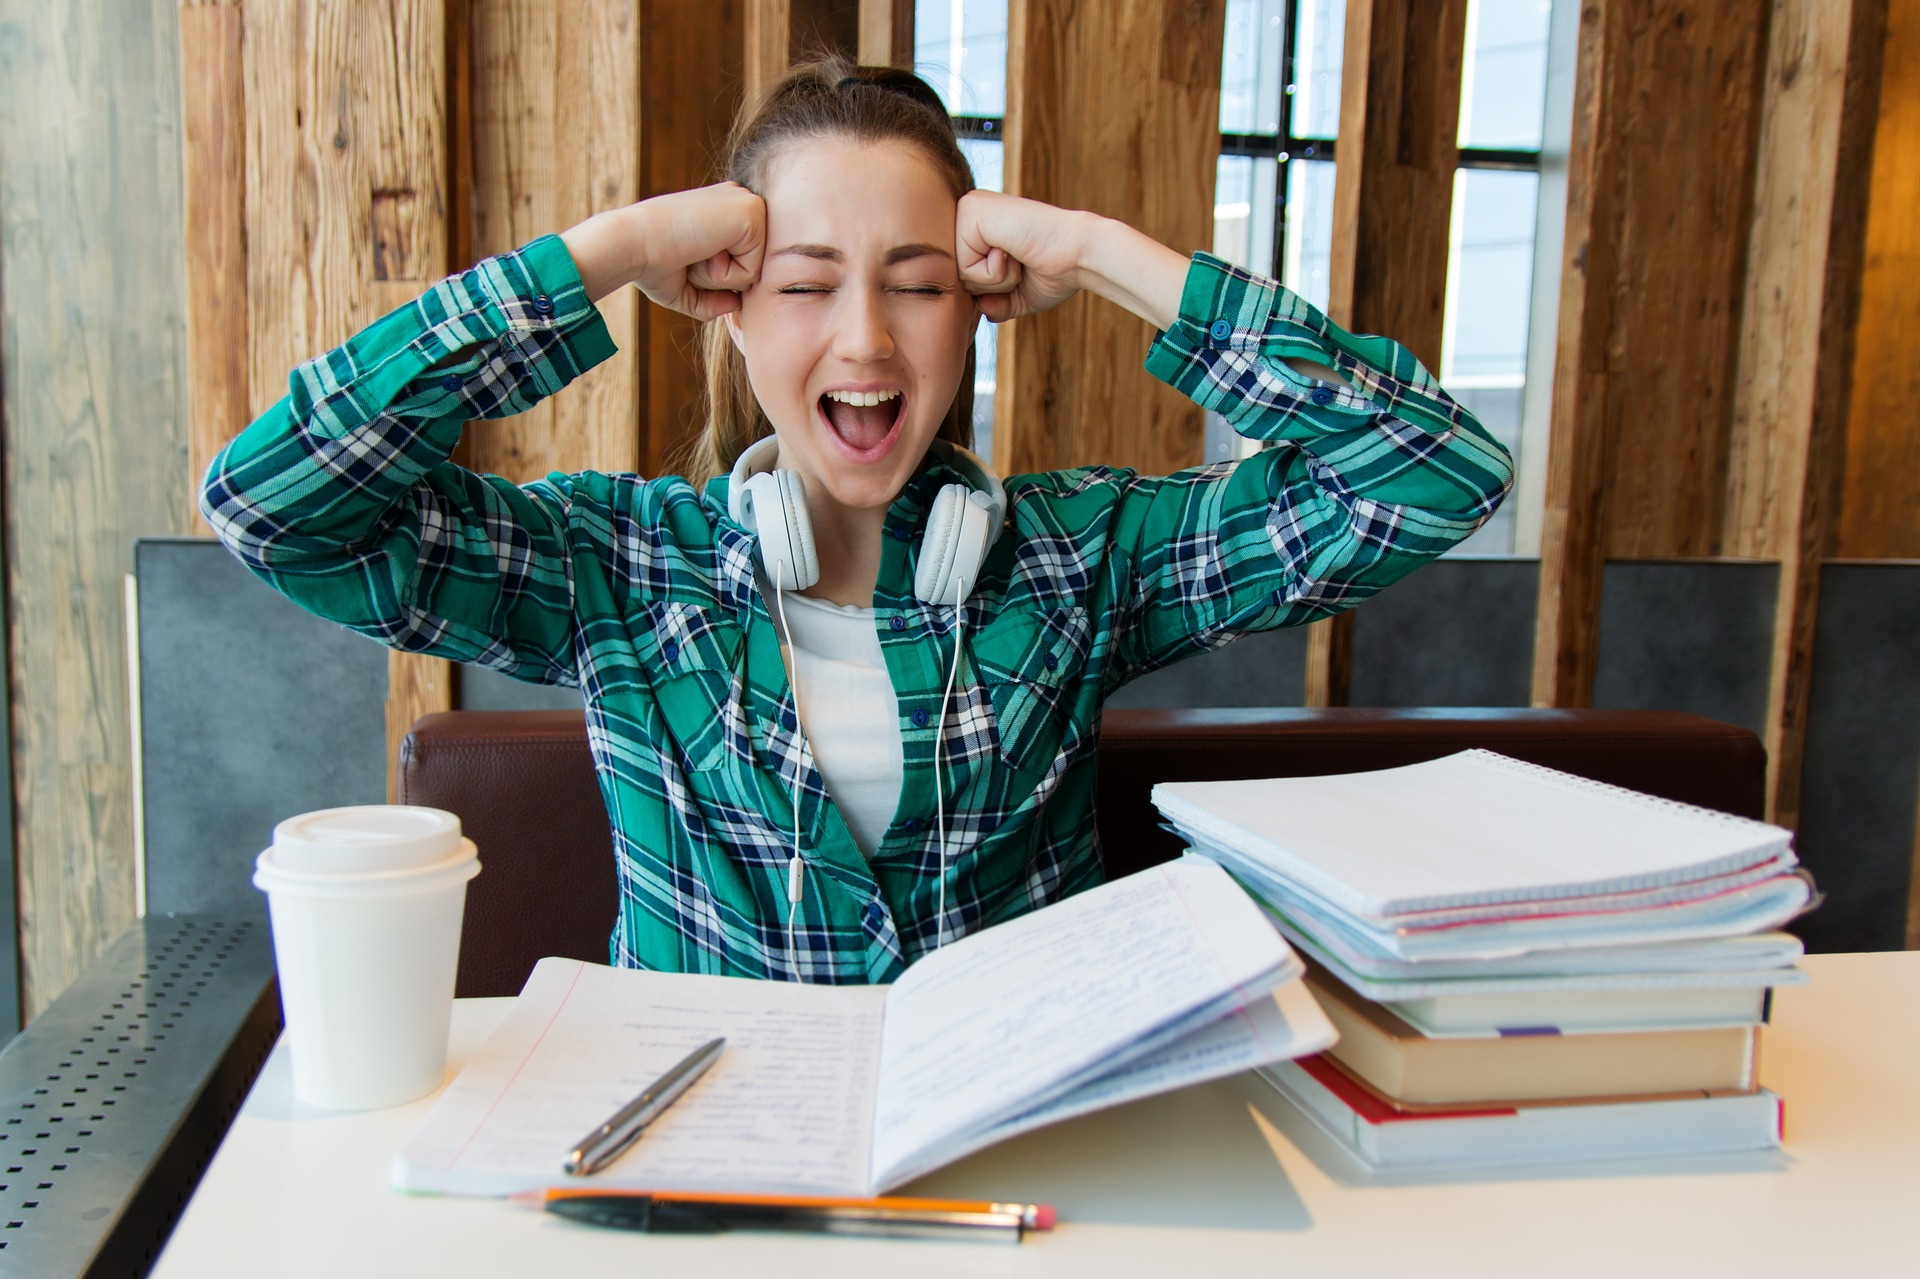 """Feeling pressure to choose the """"right"""" major? - You aren't alone! On average, college students change their majors 2.2 times. Choosing the right college major can feel like a game of Pin the Tail on the Donkey! Spin around and point blindly."""